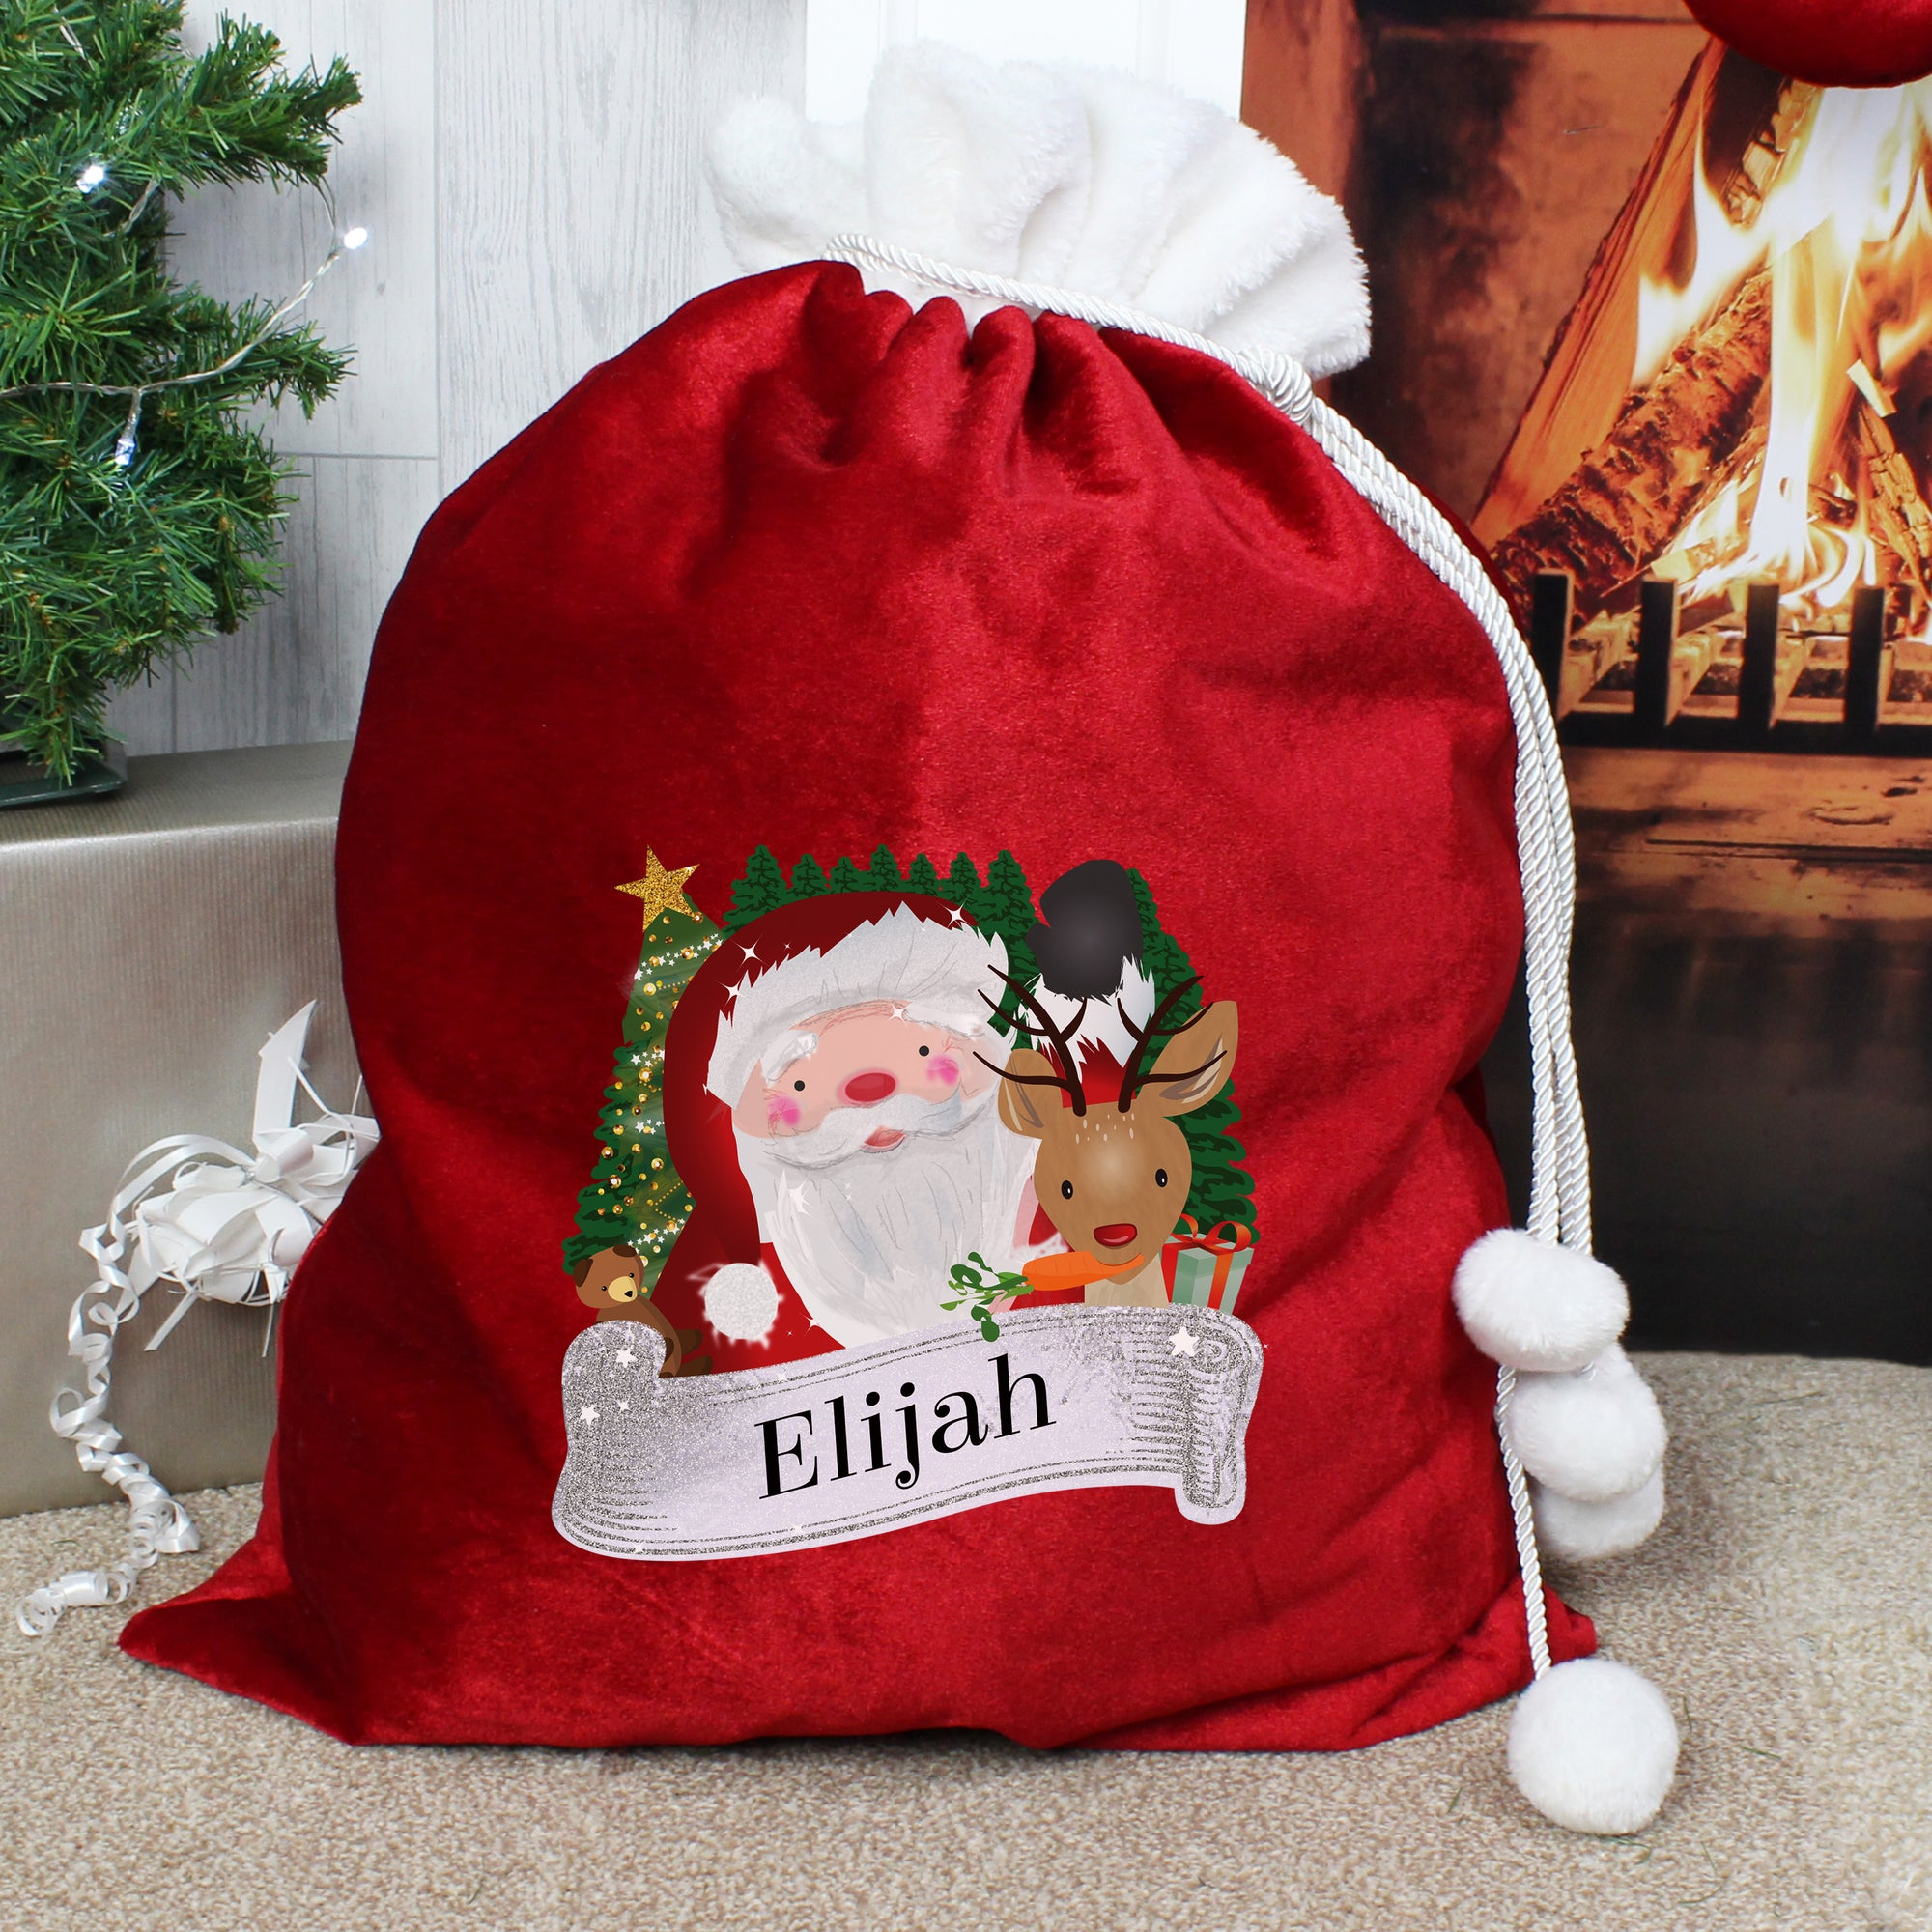 Personalised soft red velvet Christmas present sack featuring a cartoon illustration of Santa and the wording Merry Christmas. There is a white fur cuff on the top of the sack. The front of the sack can be personalised with a name of your choice of up to 12 characters which will be printed just below the illustration of Santa in a black font.